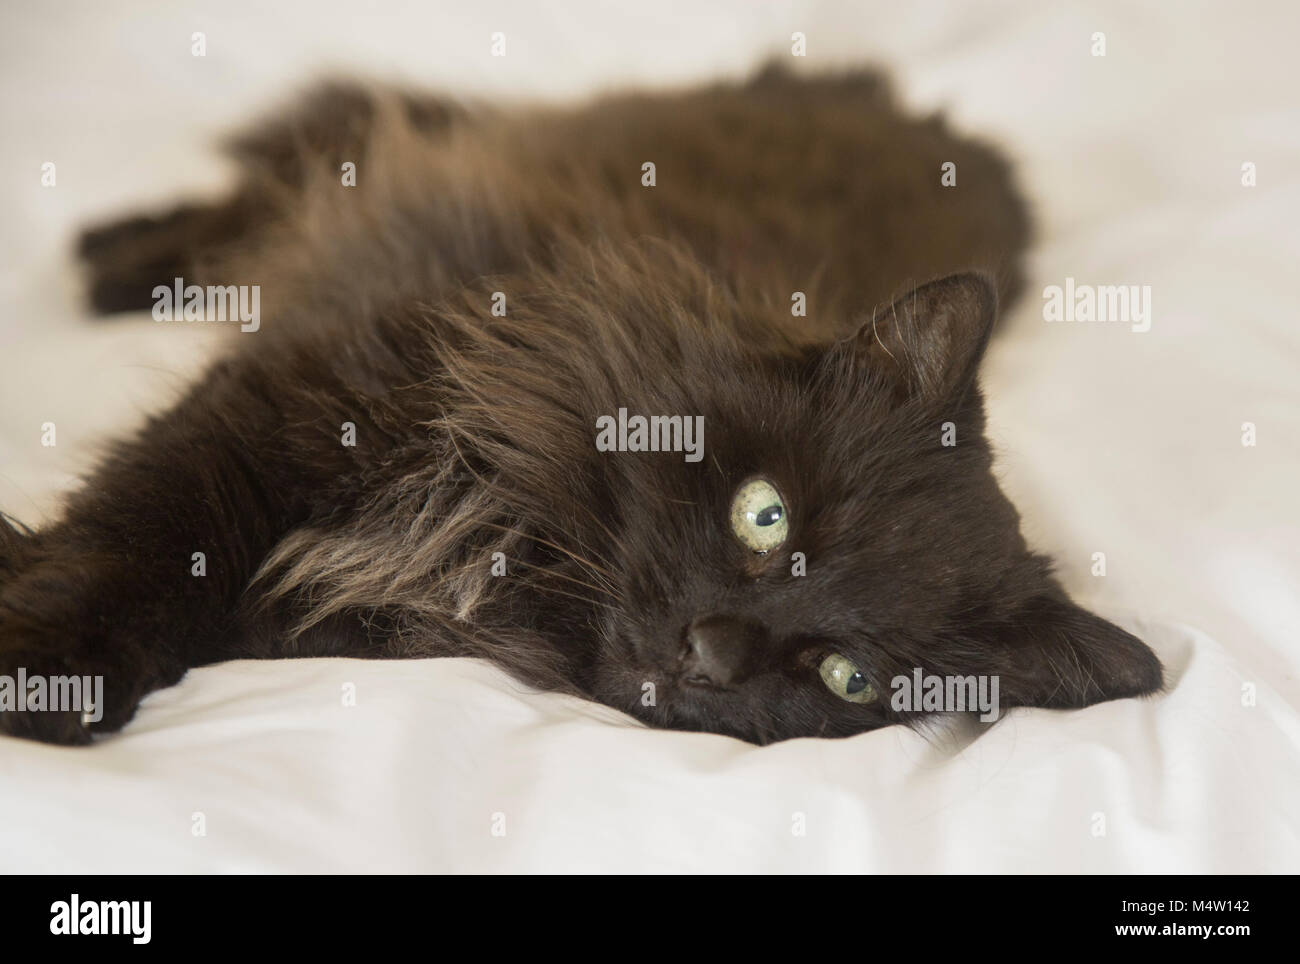 Long haired black cat lying on a white duvet cover on a bed. - Stock Image